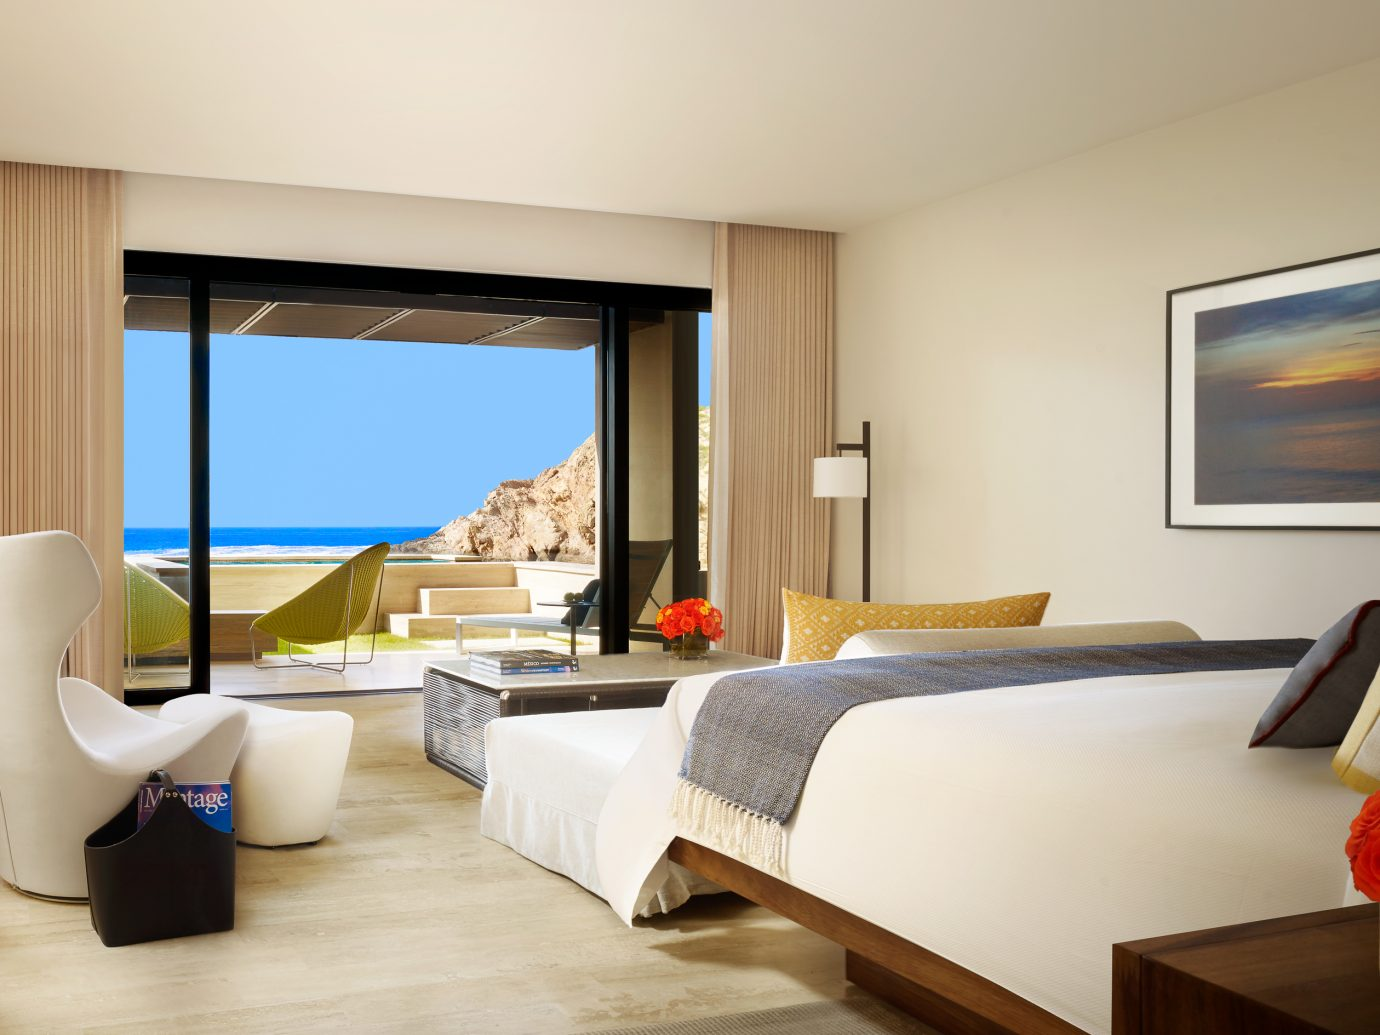 Presidential Suite at Montage Los Cabos